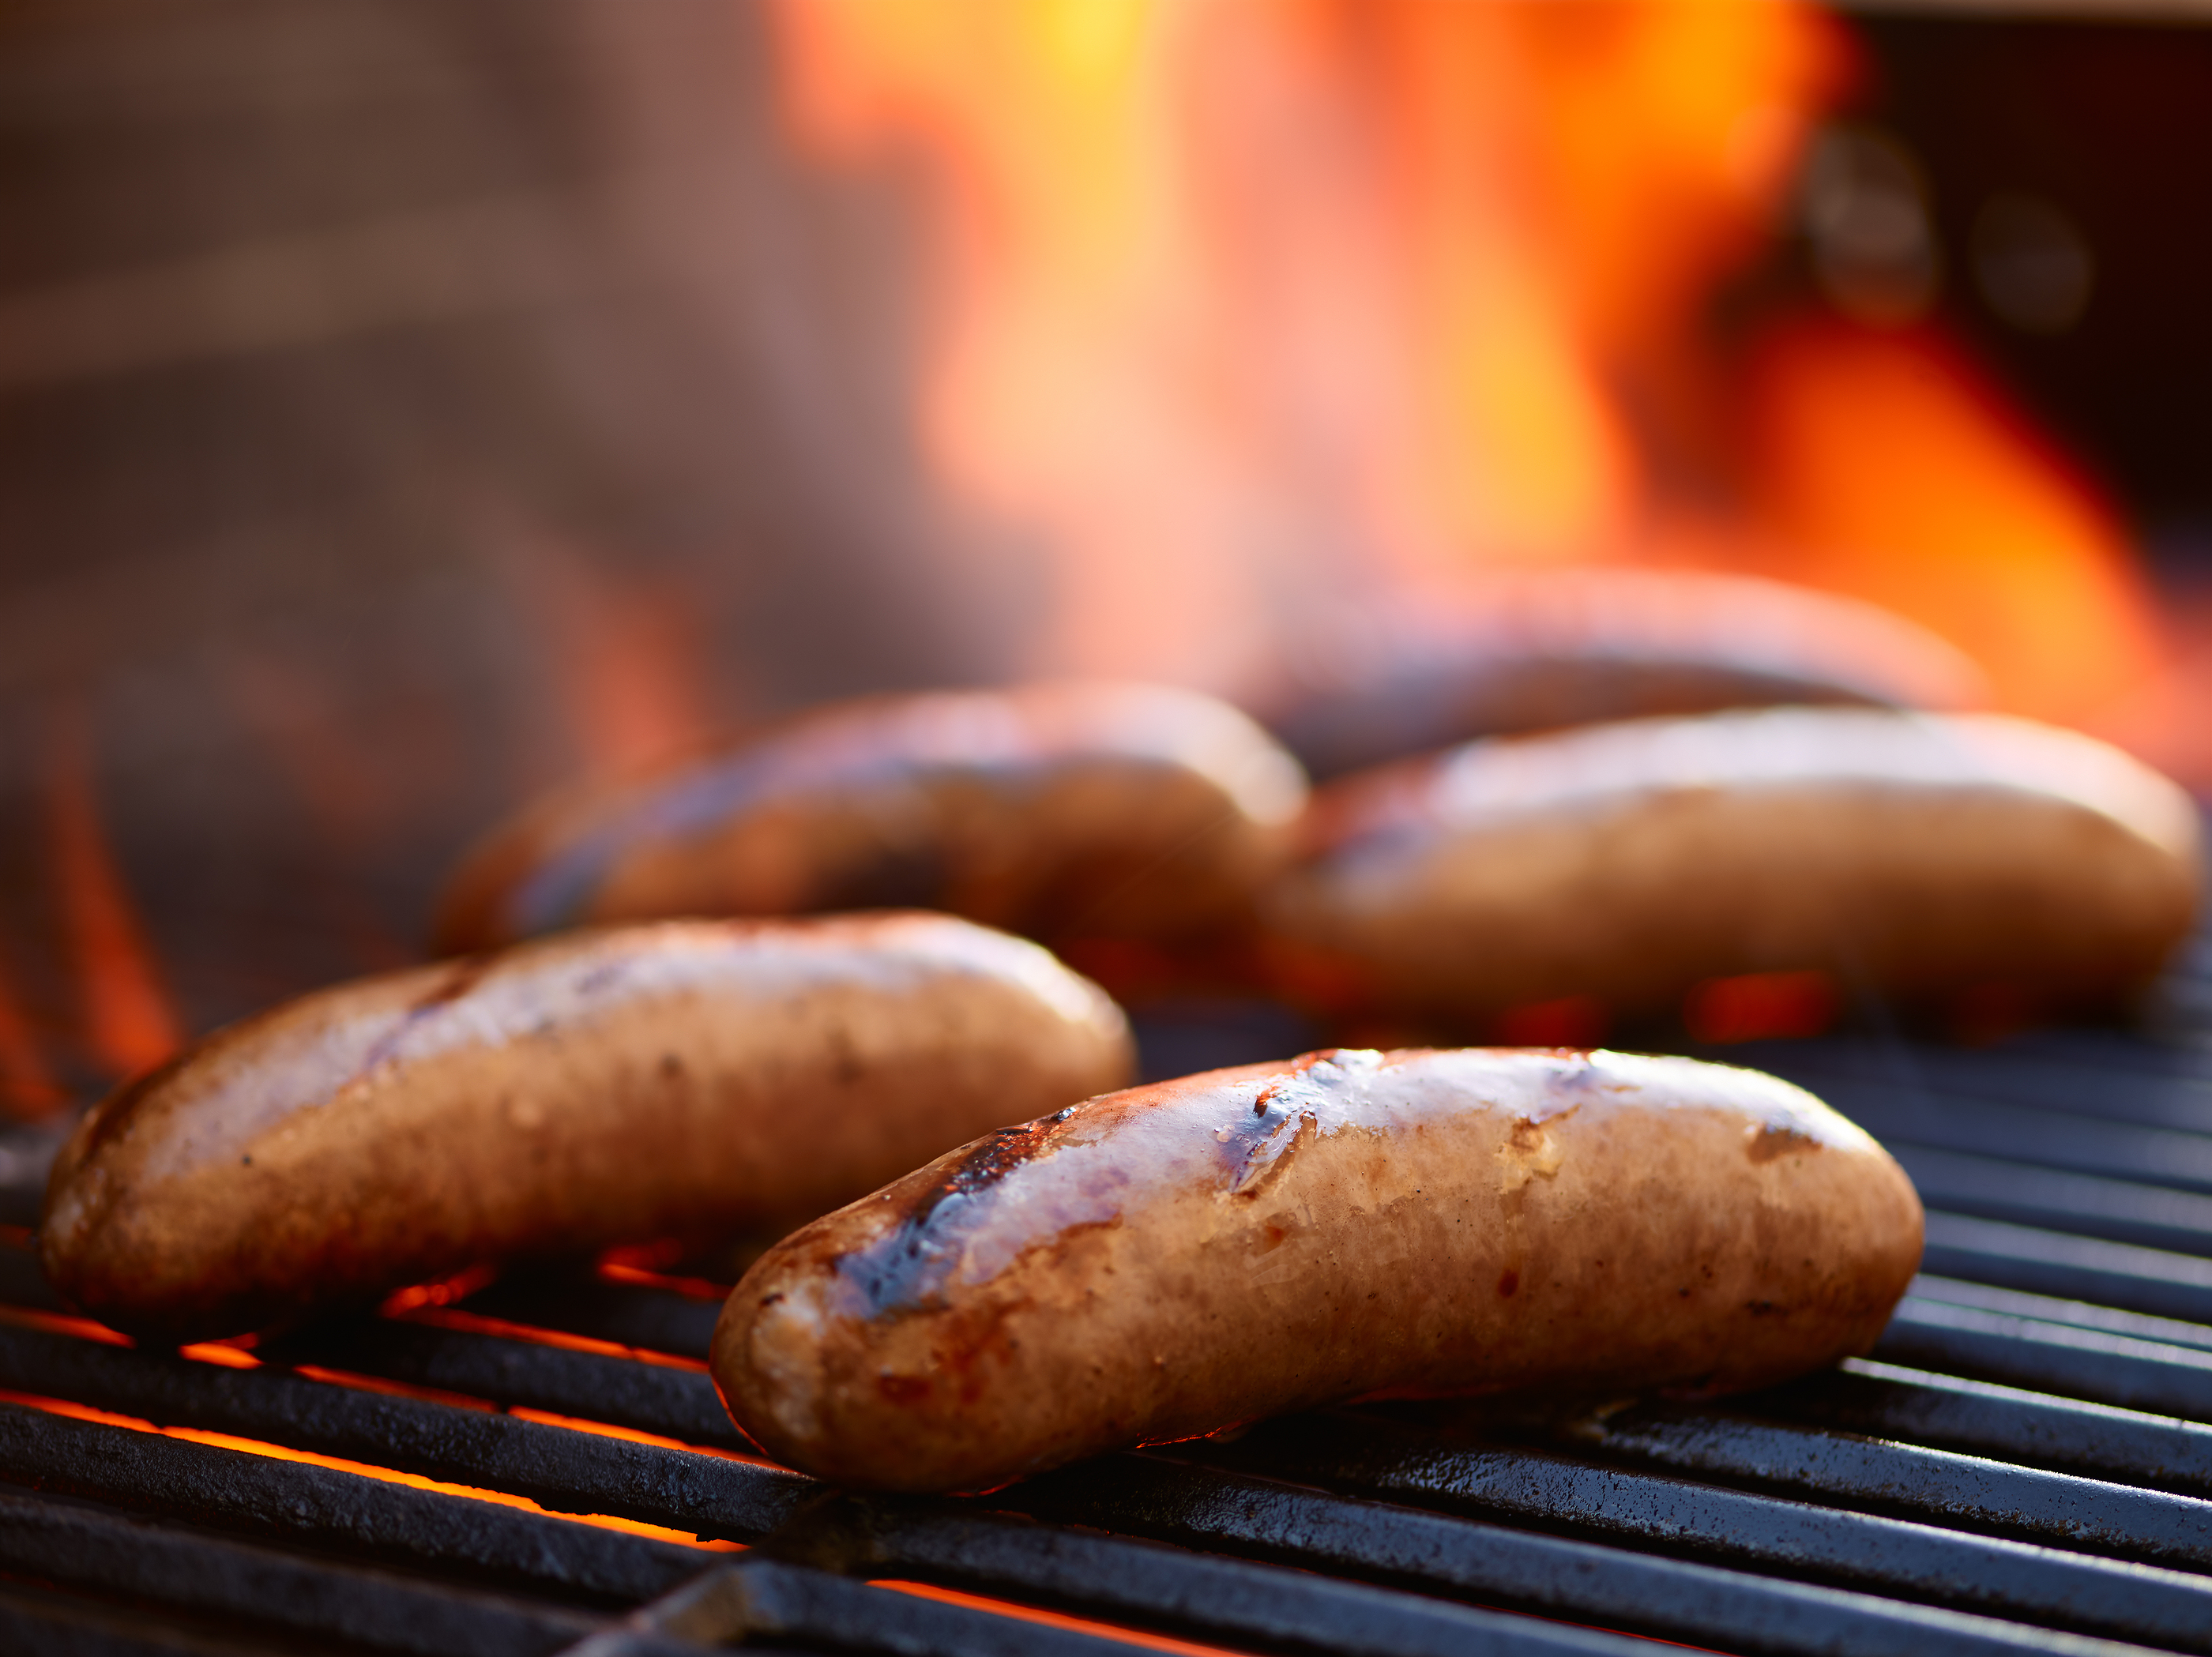 grilling bratwurst sausages over flaming grill